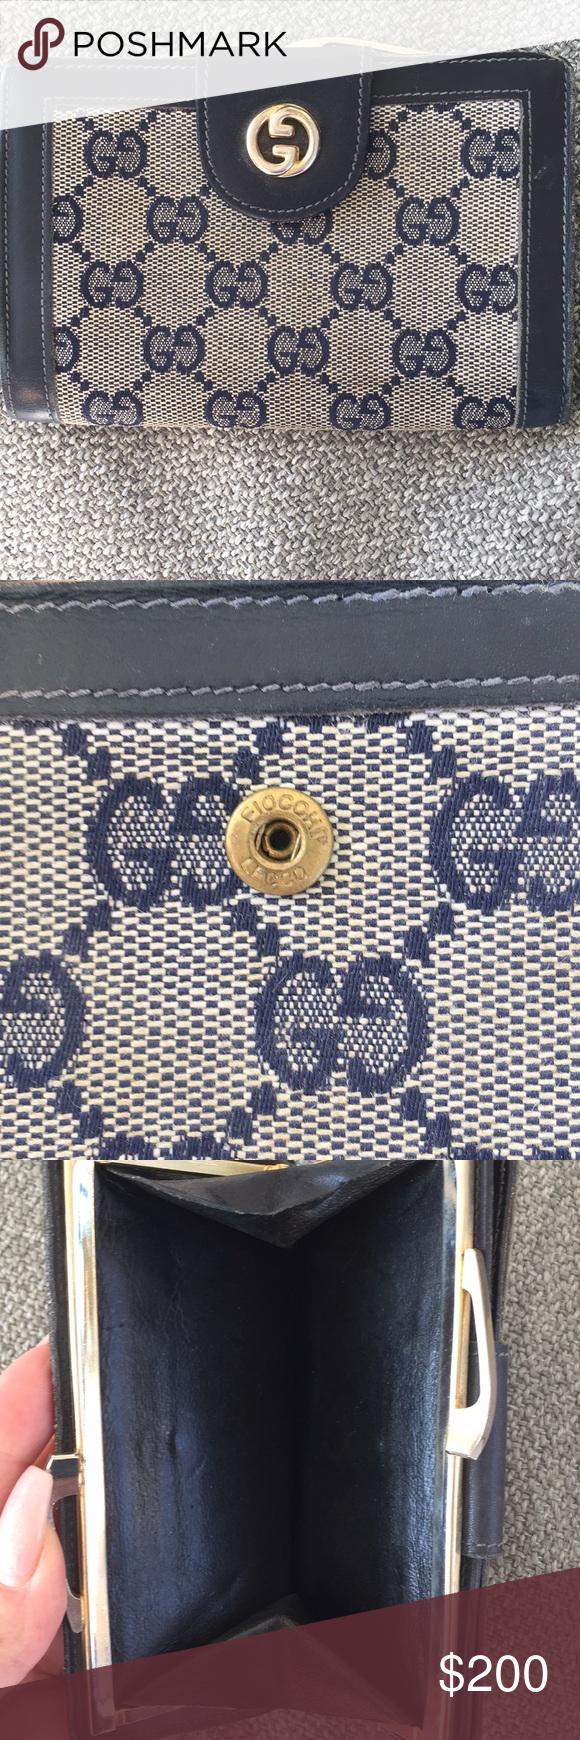 a1730d3c256a Authentic vintage Gucci wallet! Classic Gucci print. Coin purse and wallet.  Fiocchi Lecco emblem on button clasp. Gucci Bags Wallets